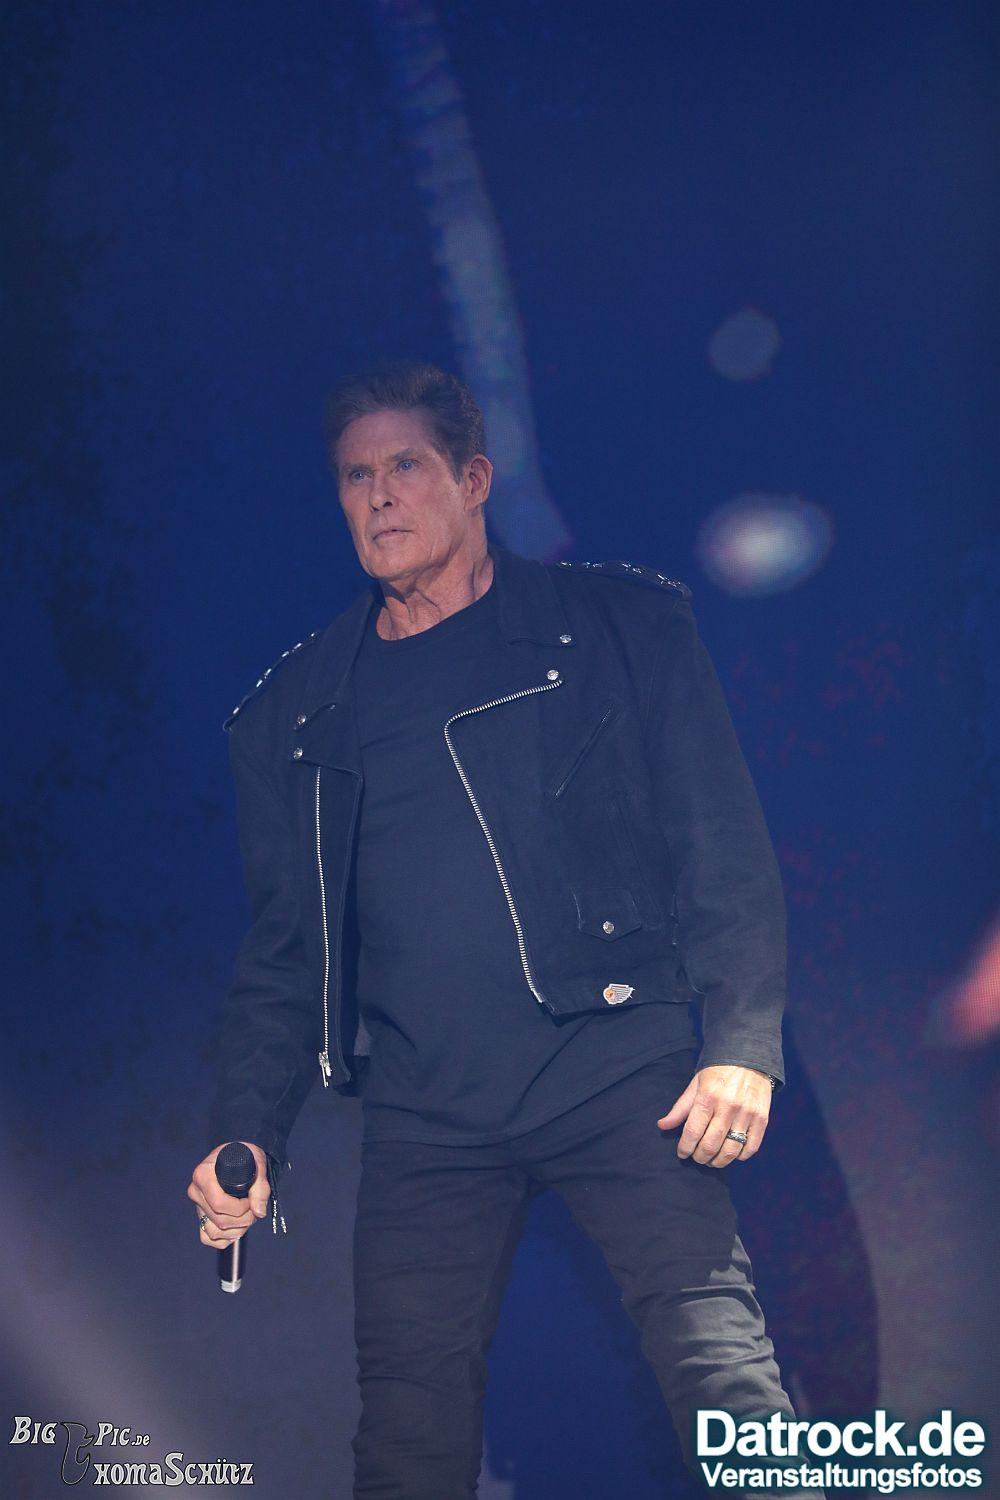 David Hasselhoff 30 Years Looking For Freedom Tour In Der Rittal